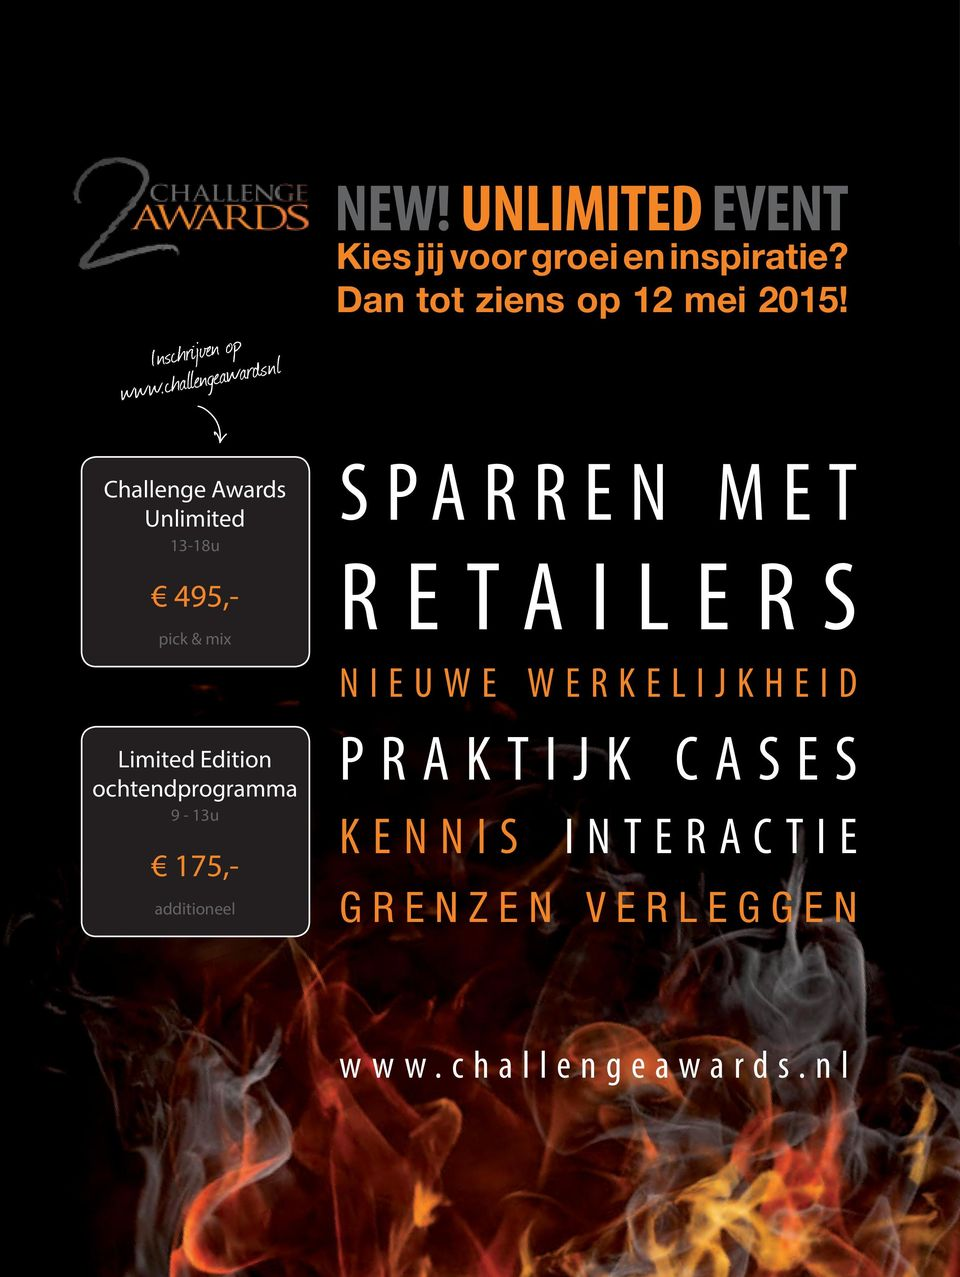 Challenge Awards Unlimited 13-18u 495,- pick & mix Limited Edition ochtendprogramma